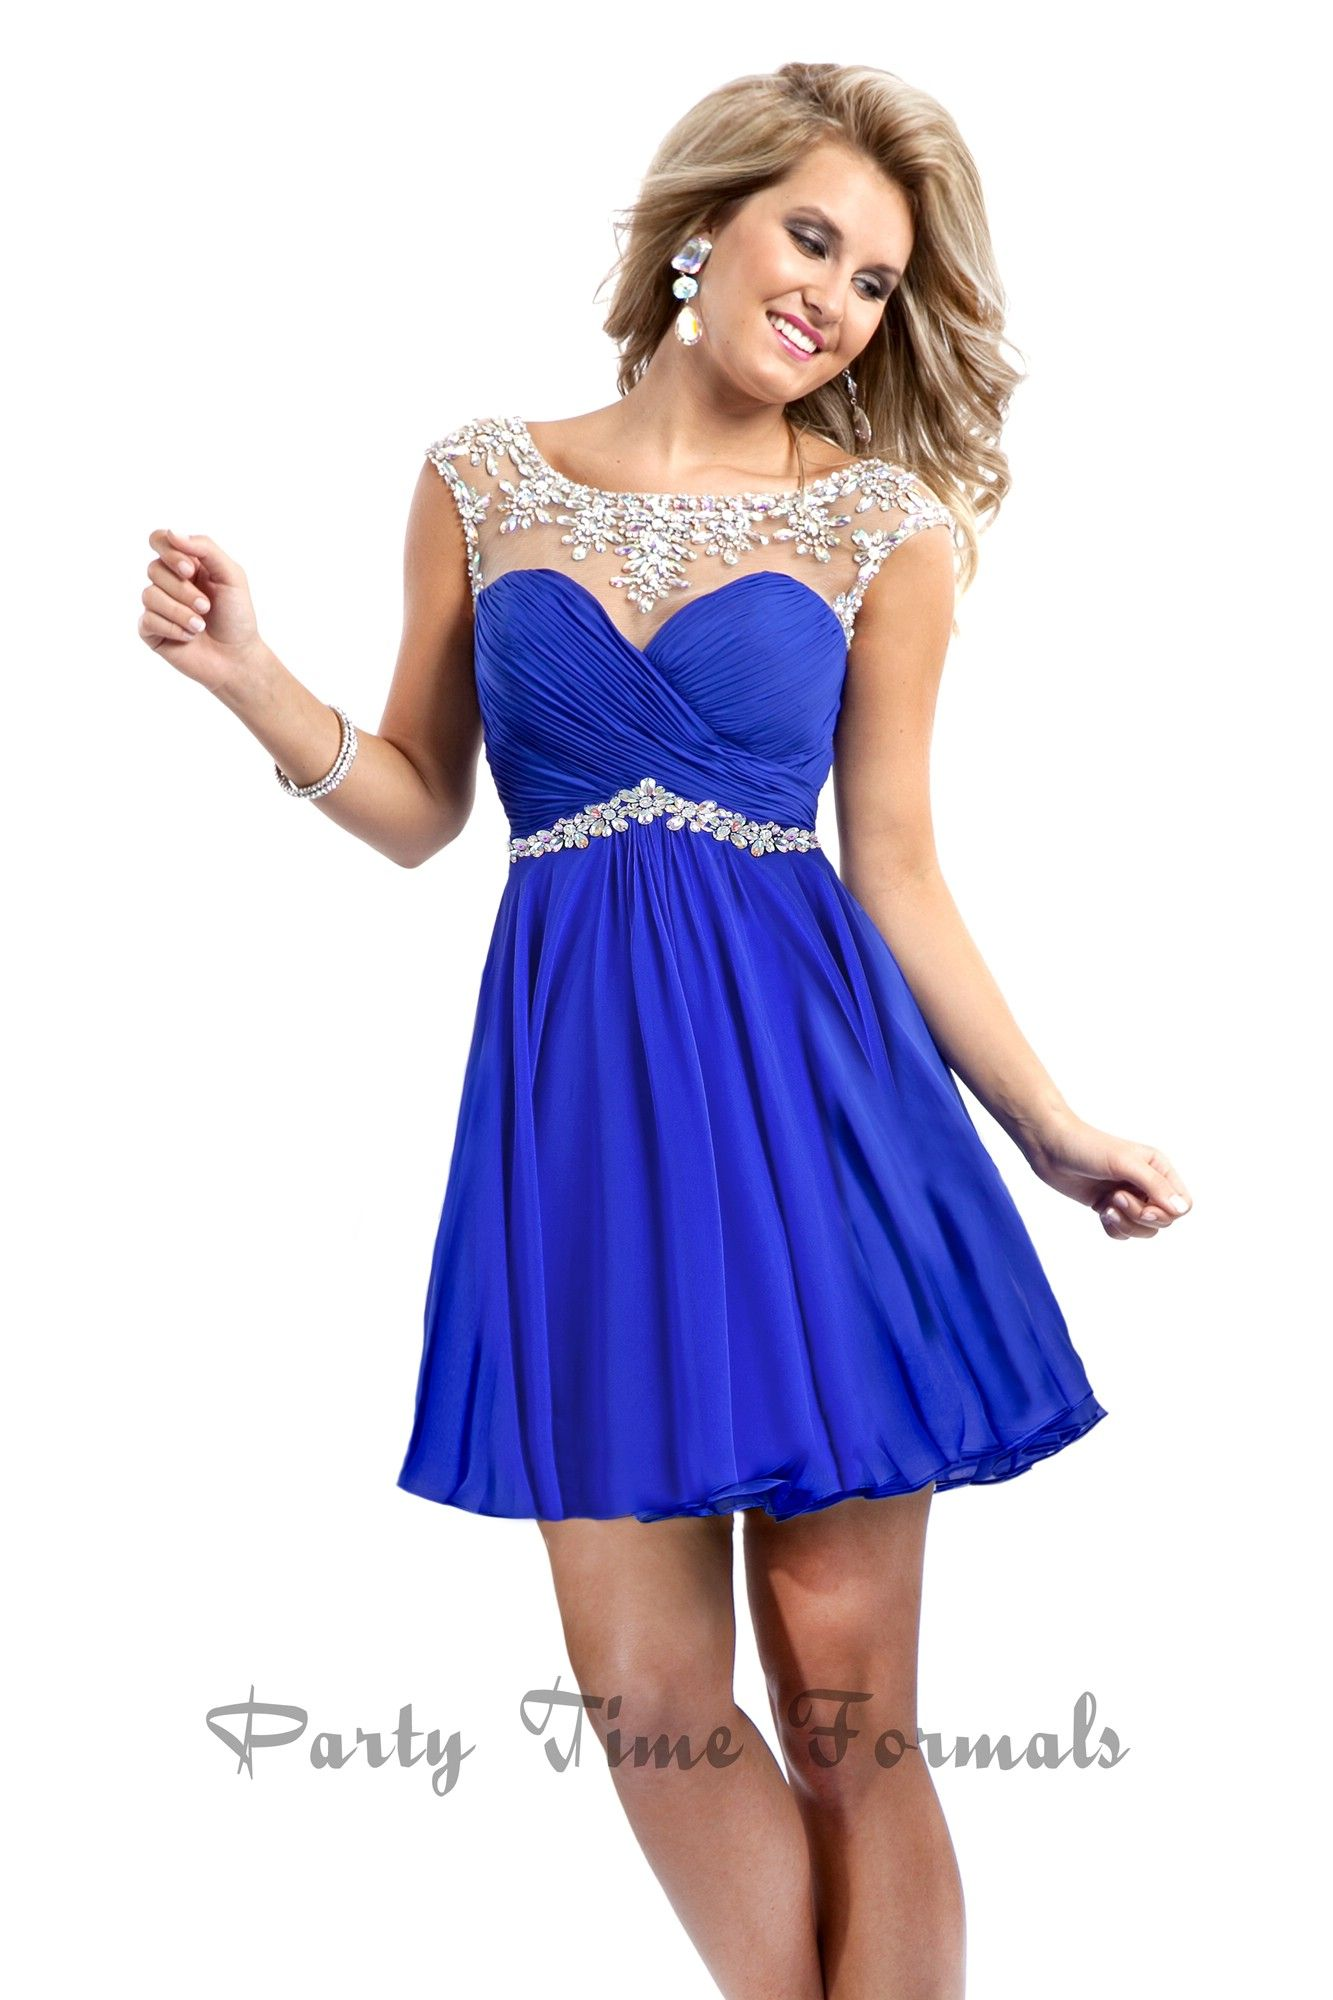 Party Time 2014 Prom Dress Style 6490 [6490] | Formal Dress Ideas ...